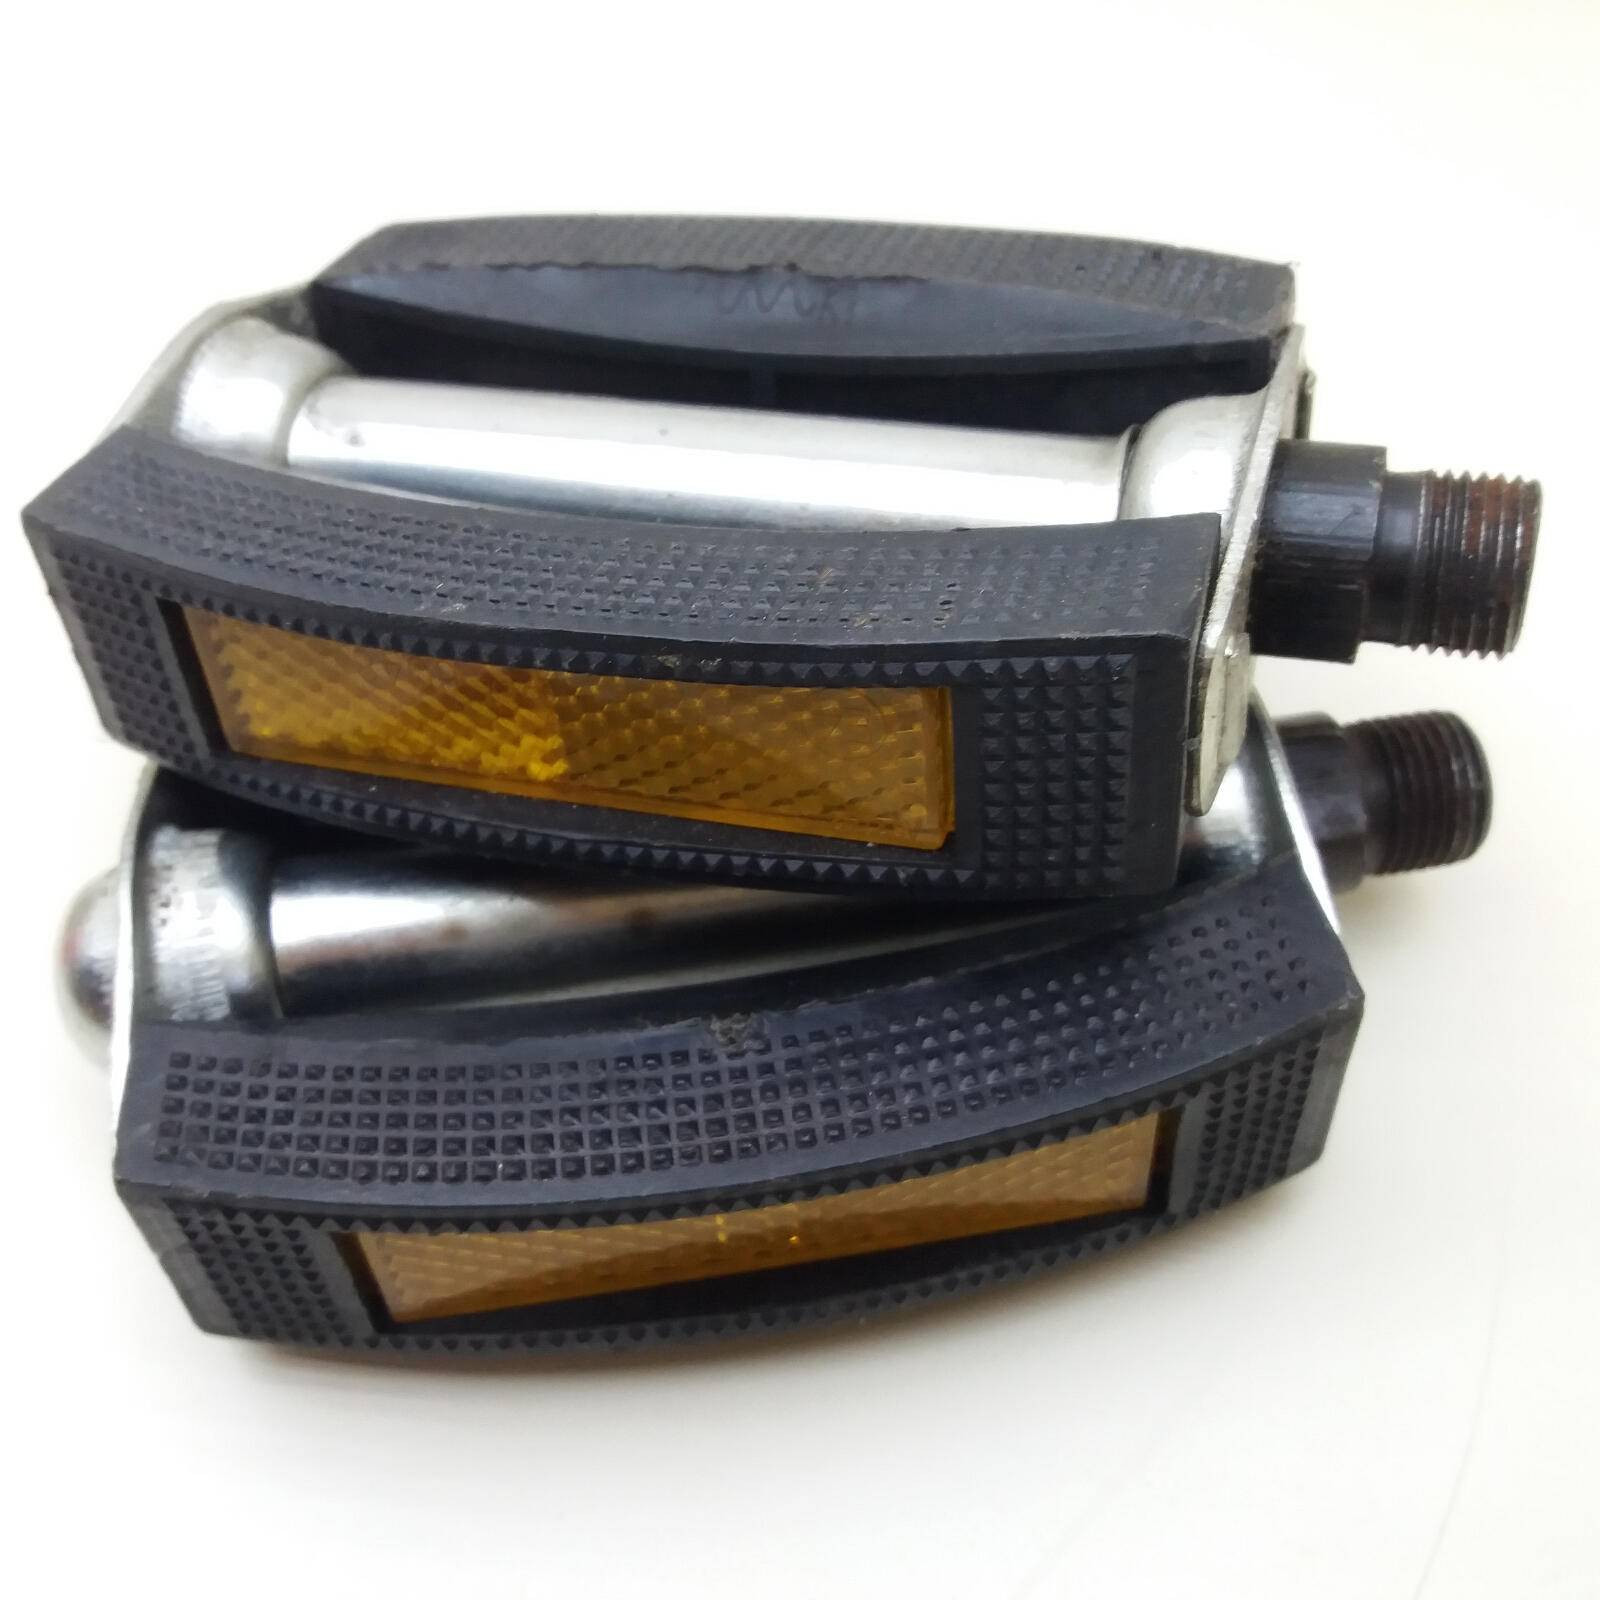 Retro Pedals VP Components Holland 9/16 Thread Metal Housing Block type Suitable for old timers bikes